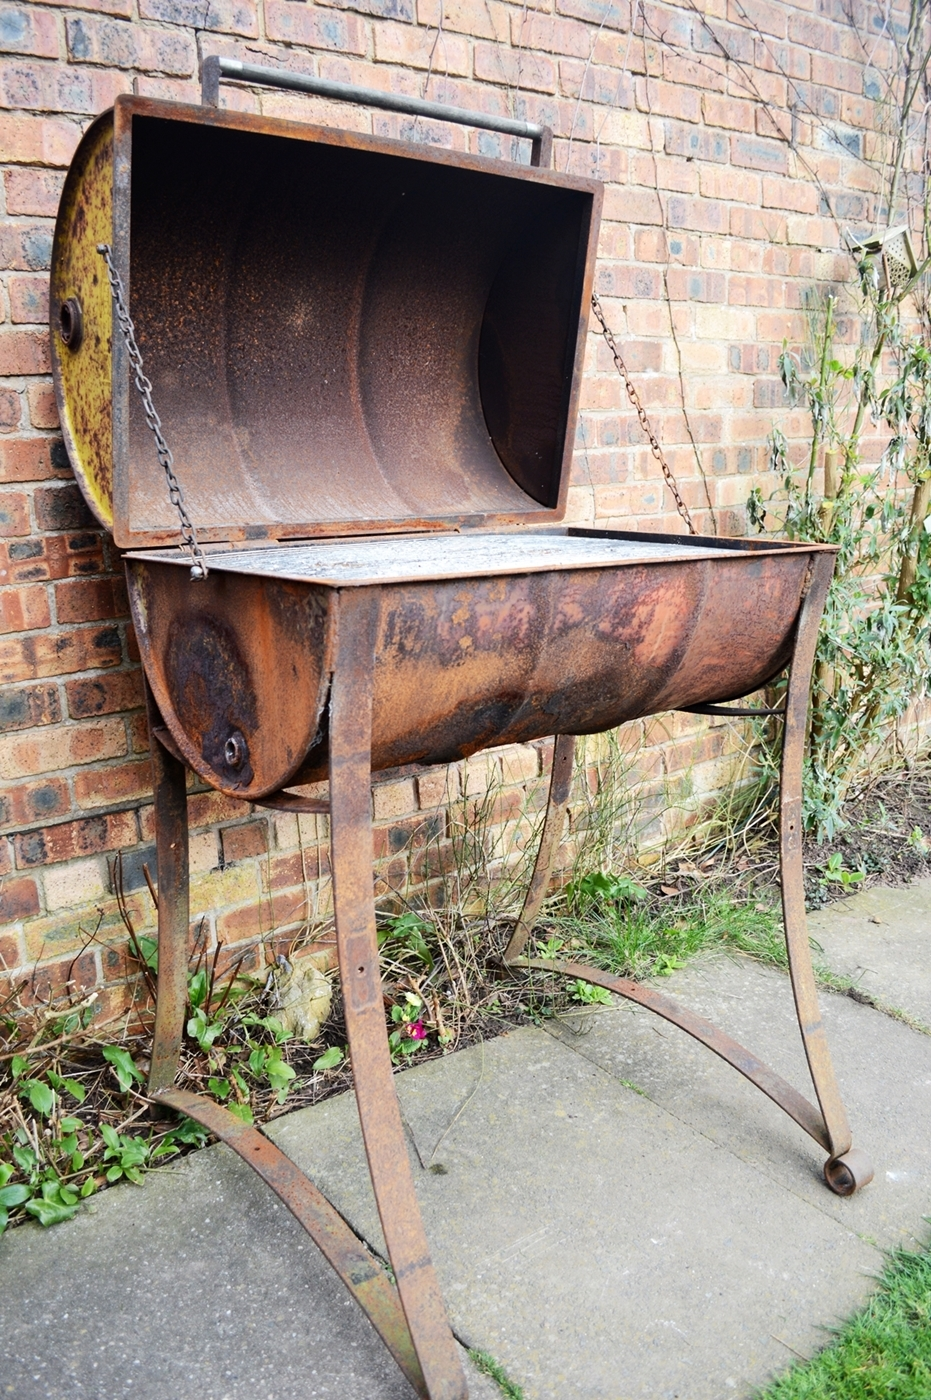 industrial-bespoke-handmade-oil-drum-barbeque-steel-welded-leaf-springs-heavy-duty-bbq-patina-rust-rustic-farmhouse-country